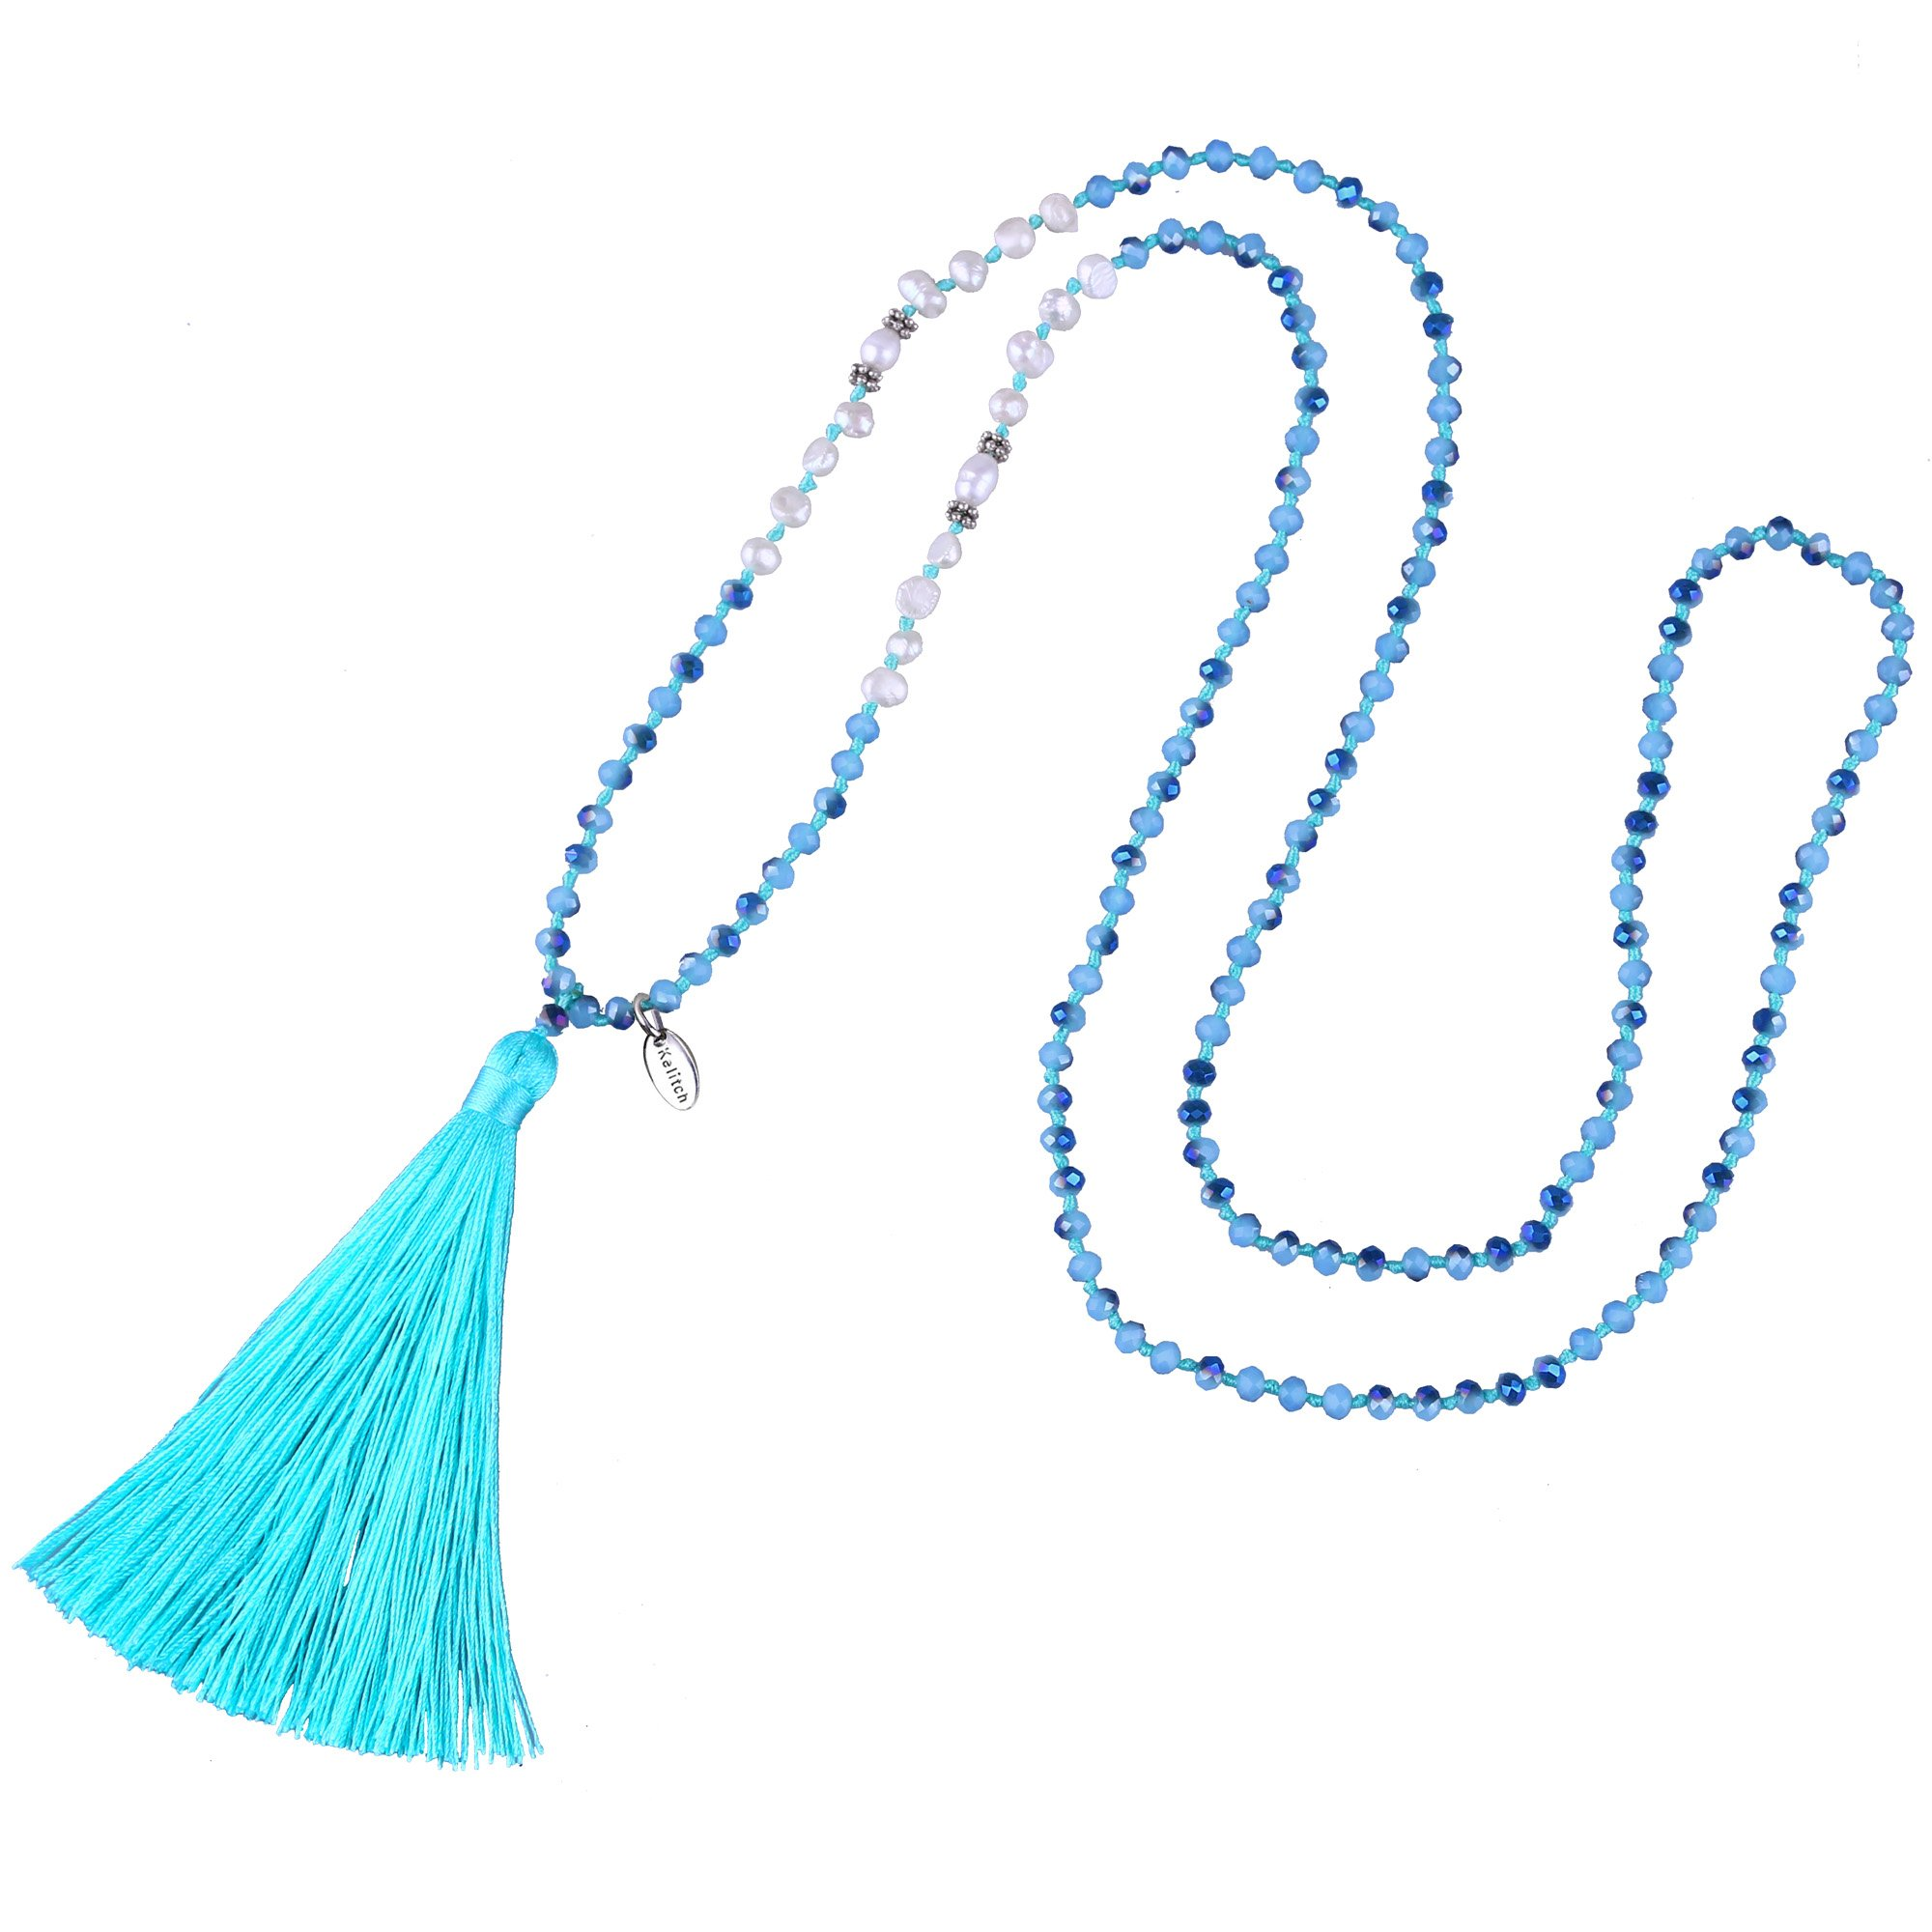 KELITCH Tassel Statement Necklace Hand Braided Crystal Beads Y Necklace for Young Lady, Blue